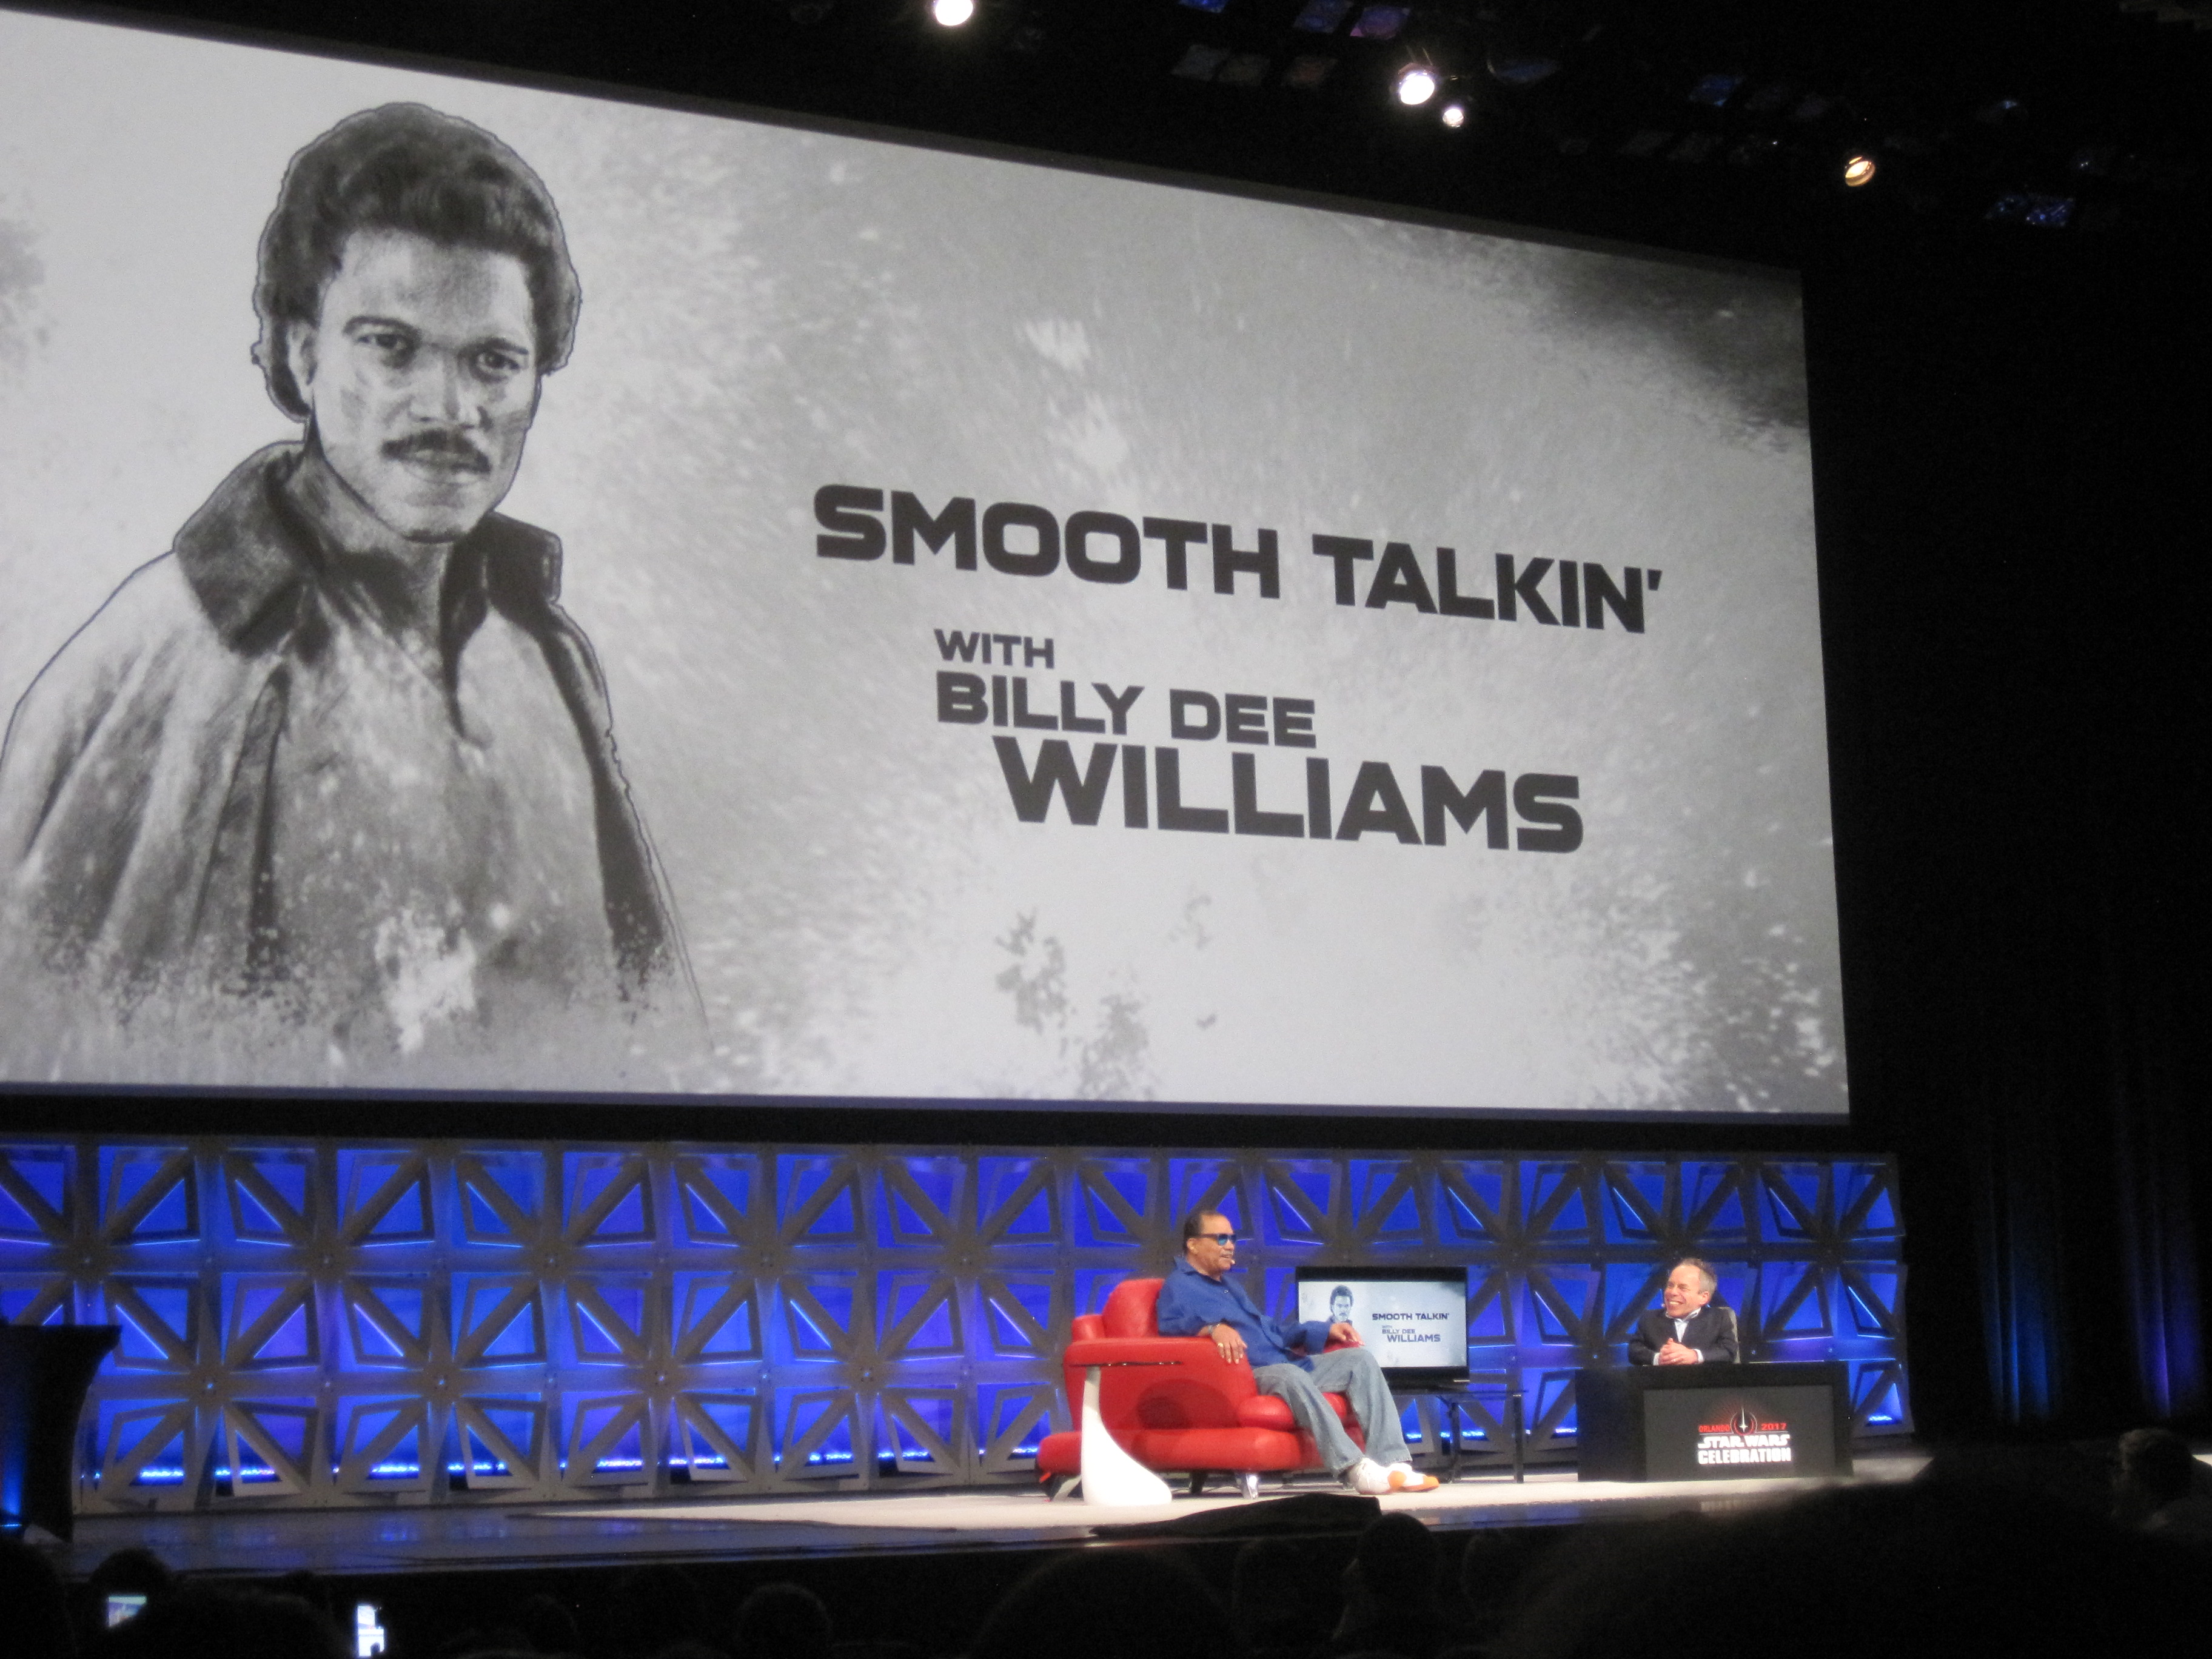 Smooth Talkin' With Billy Dee Williams